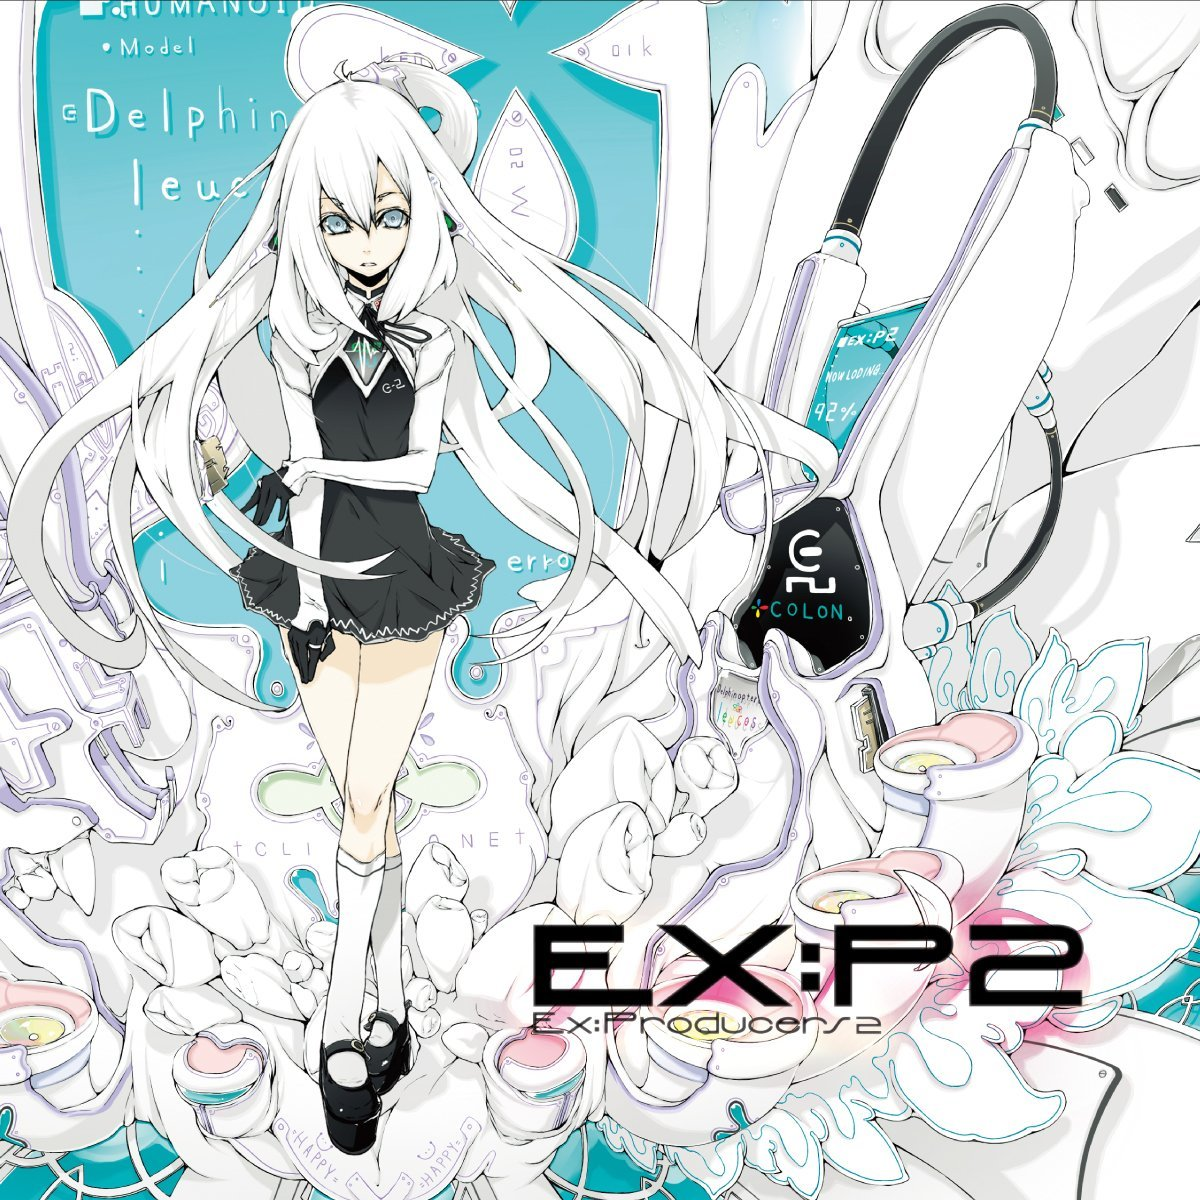 EX:P2 ~Ex:Producers2~ (album)